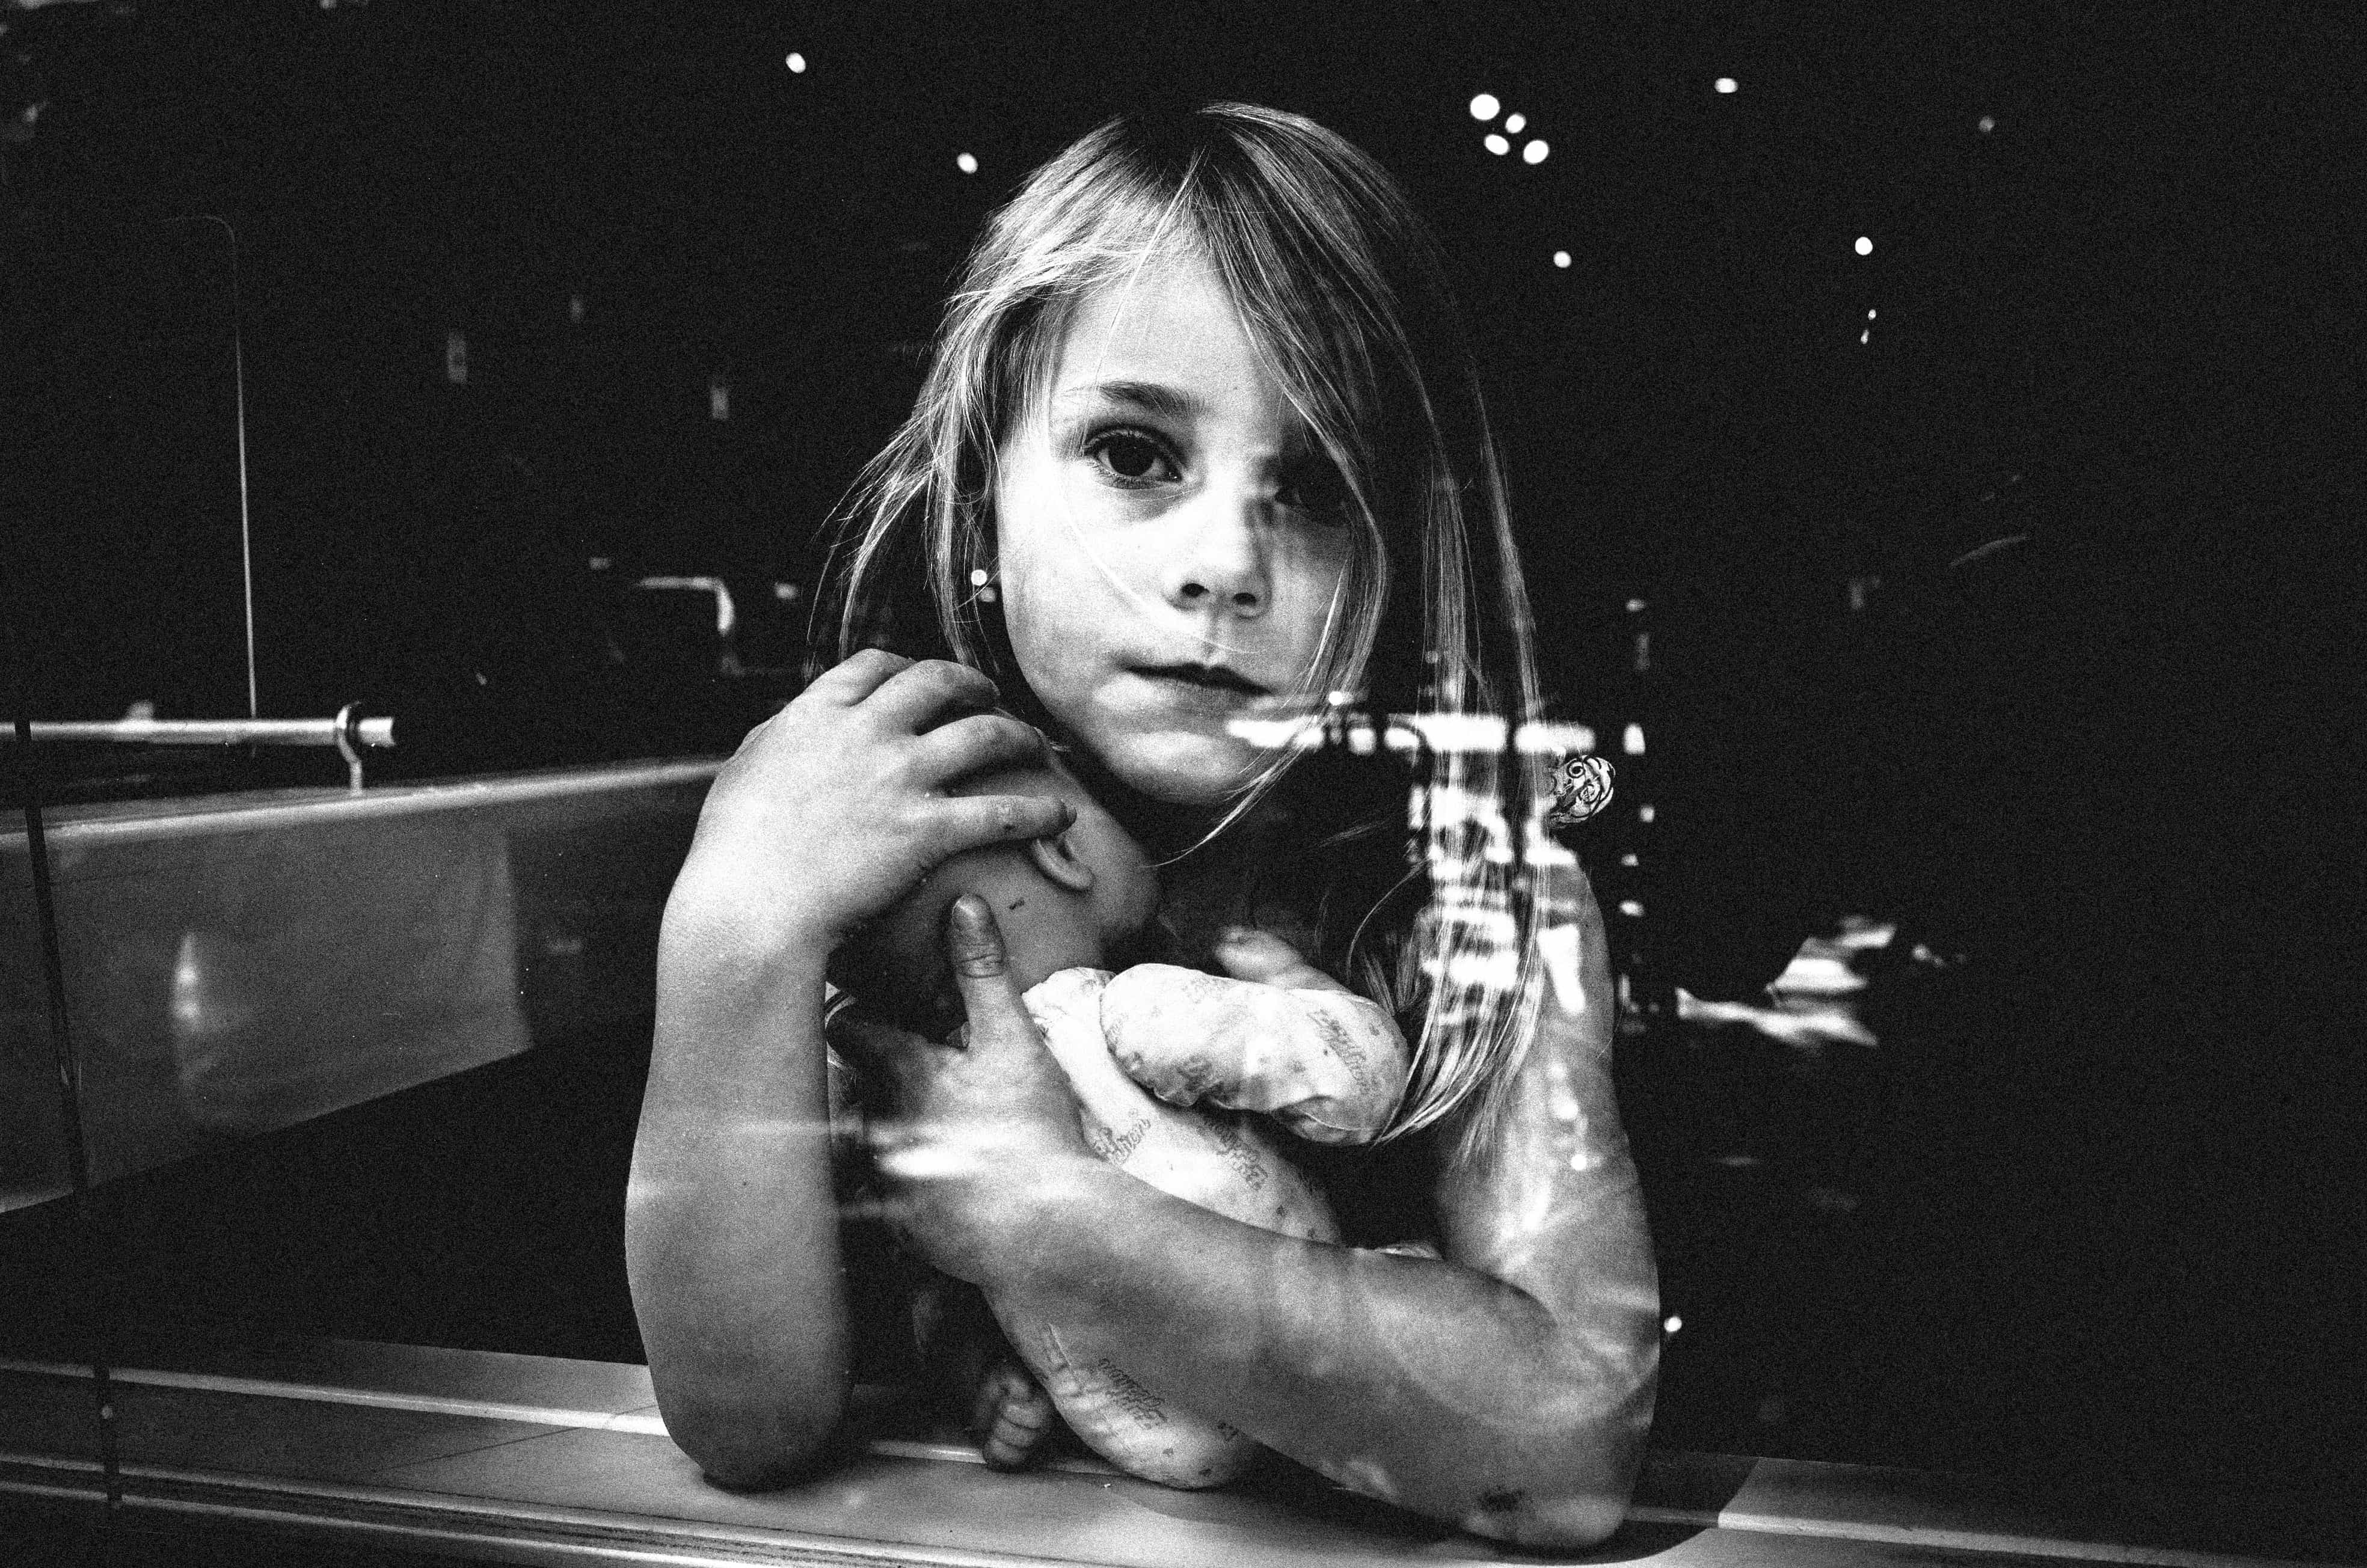 70 street photography tips for beginners